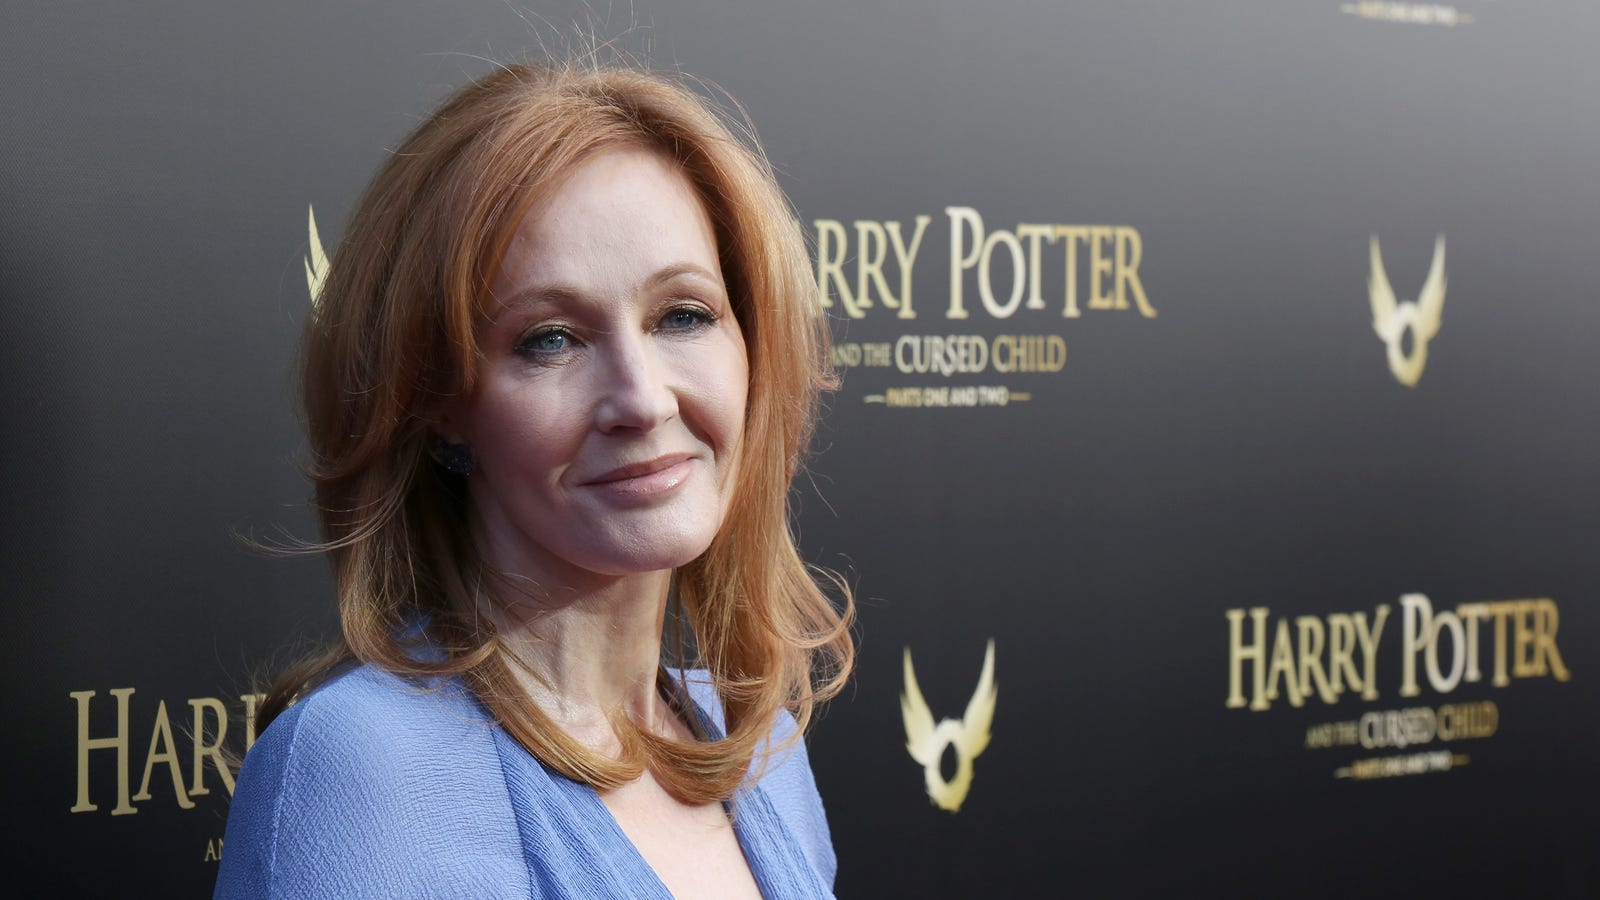 J.K. Rowling sues former employee for buying too many cats, the witchiest crime of all